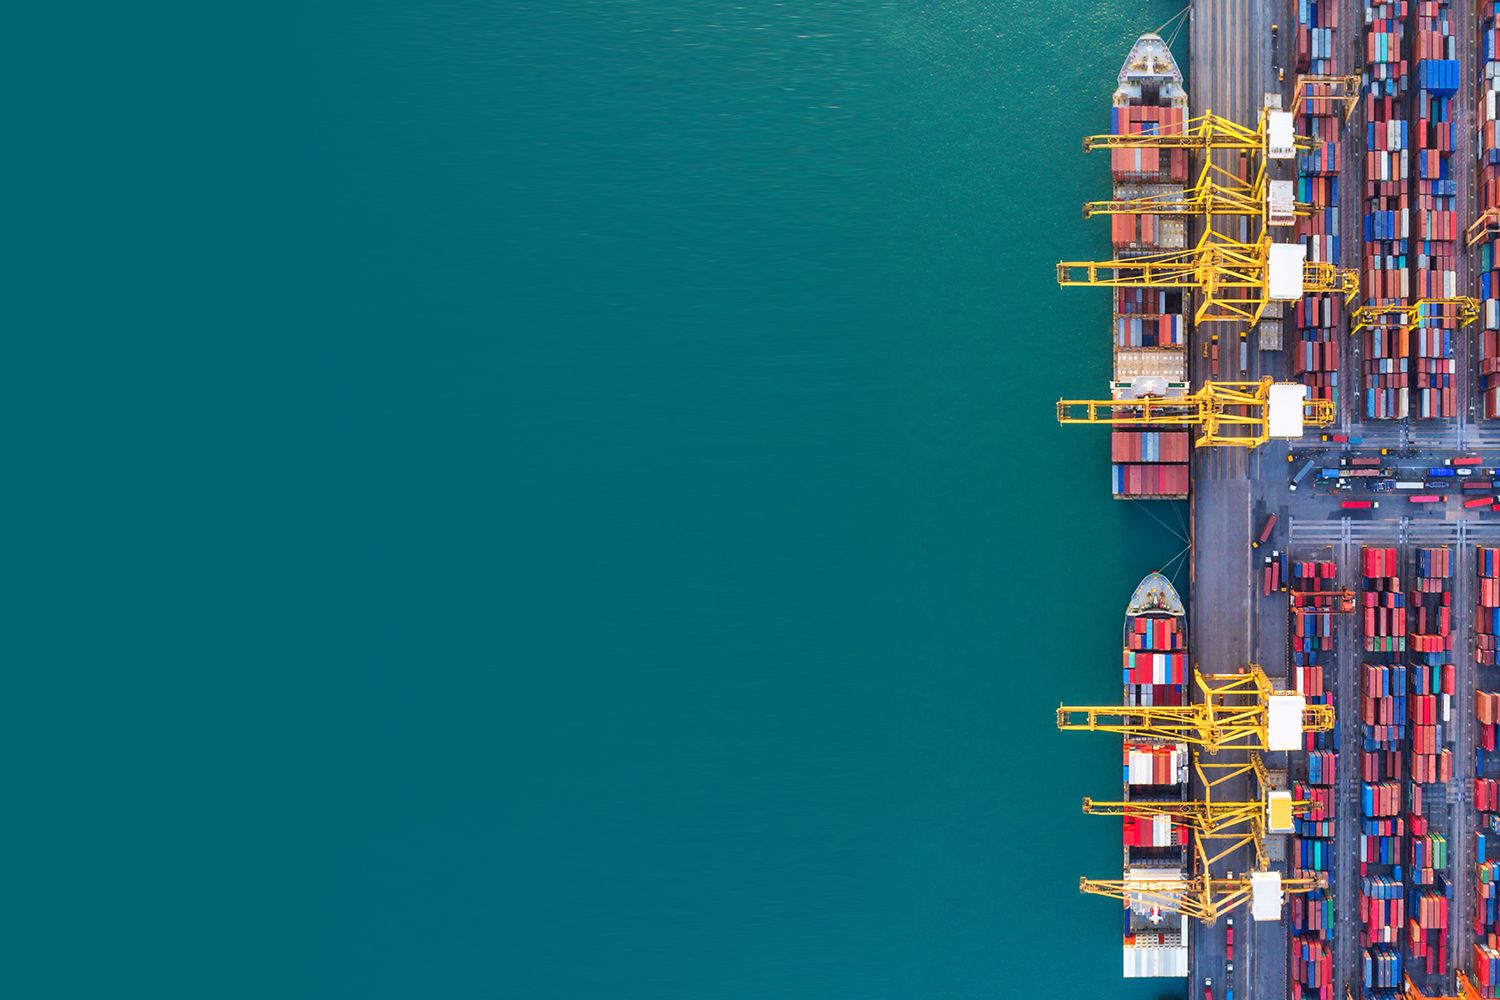 container ships in import export